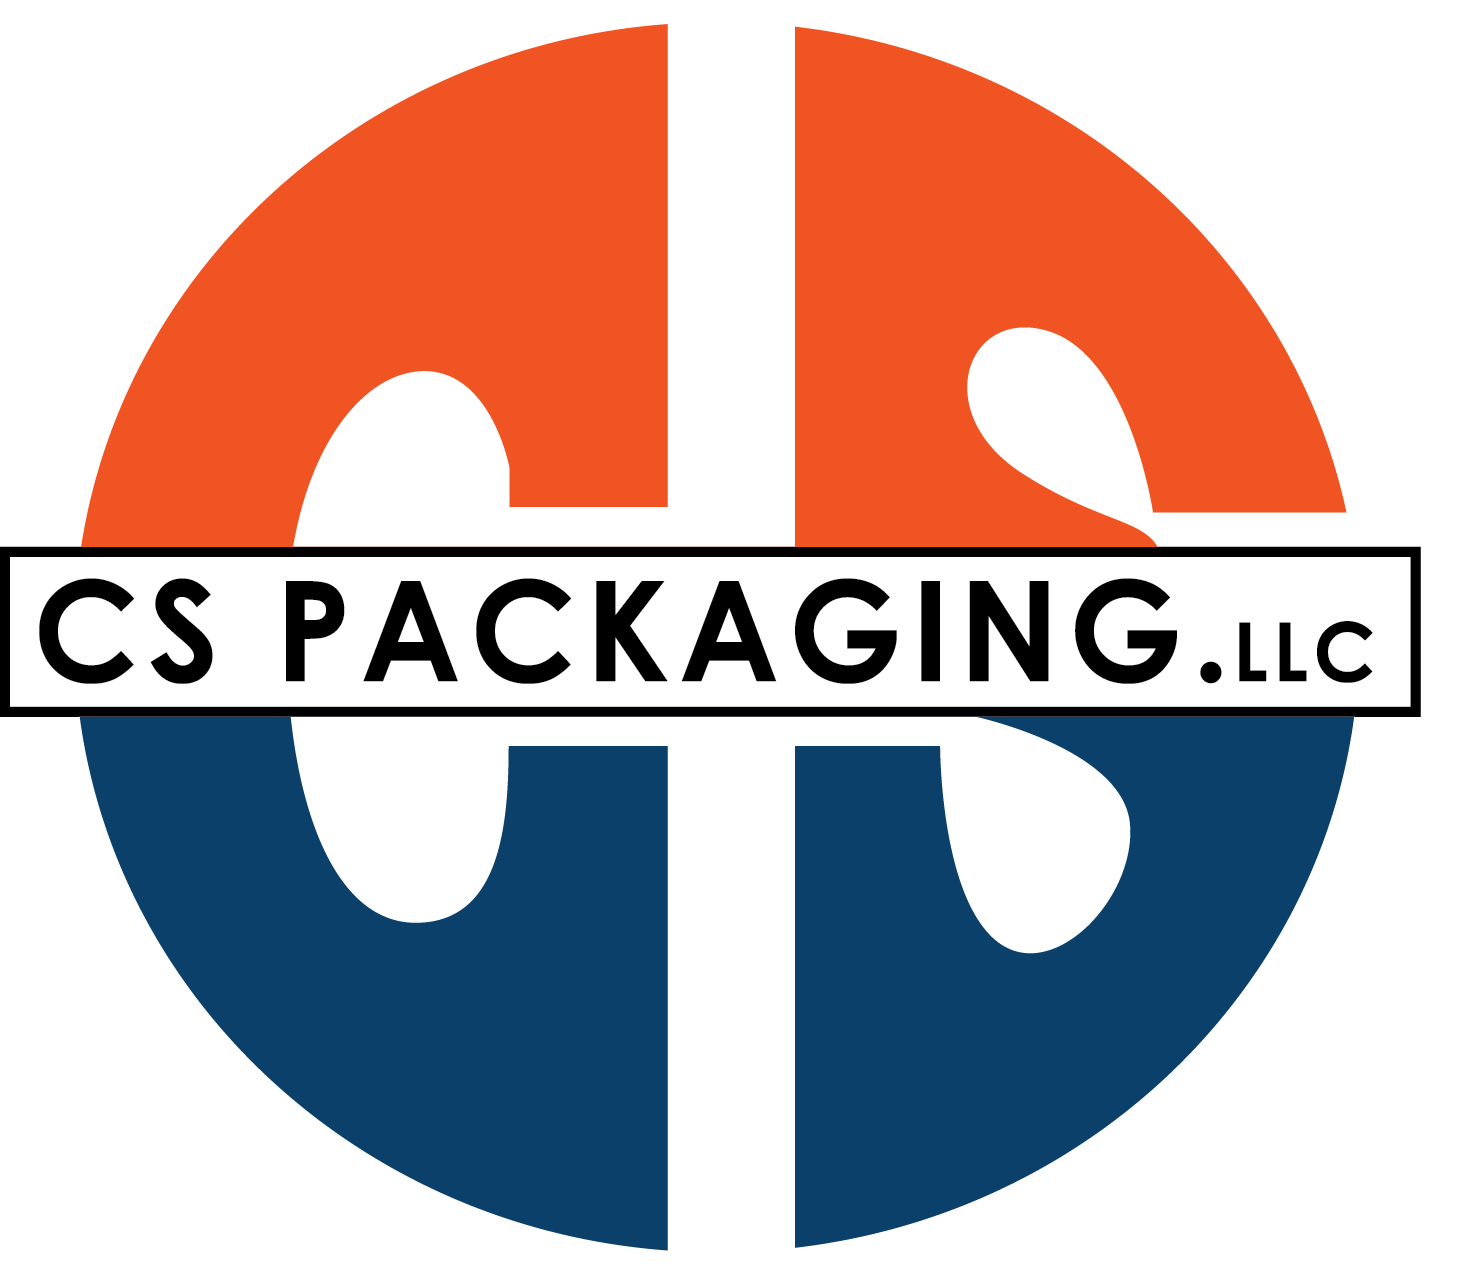 CS Packaging, LLC